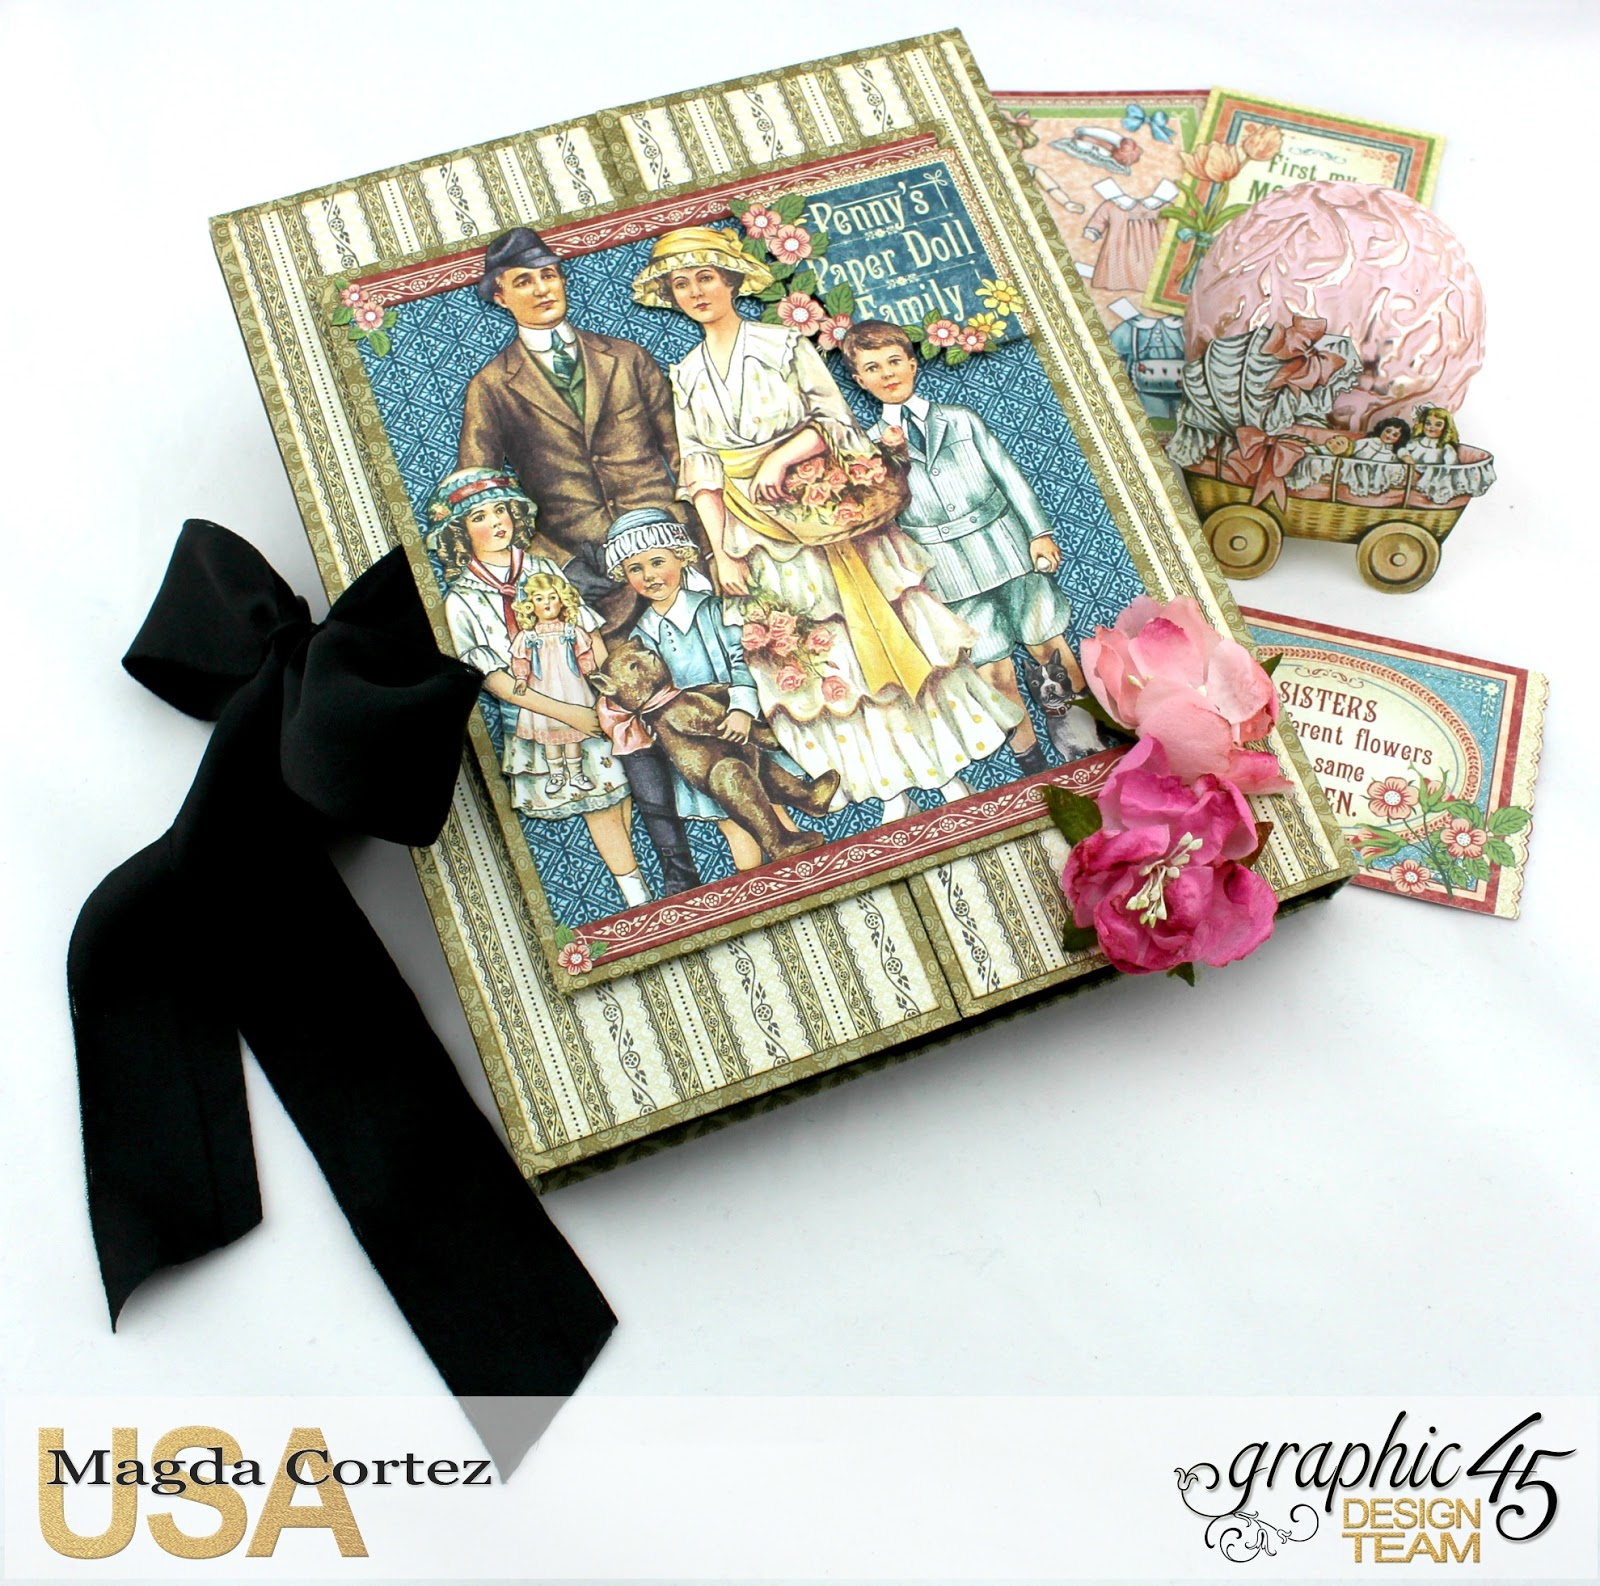 penny's paper doll family, graphic 45, scrapbook, album, play, paper doll, magda cortez.jpg